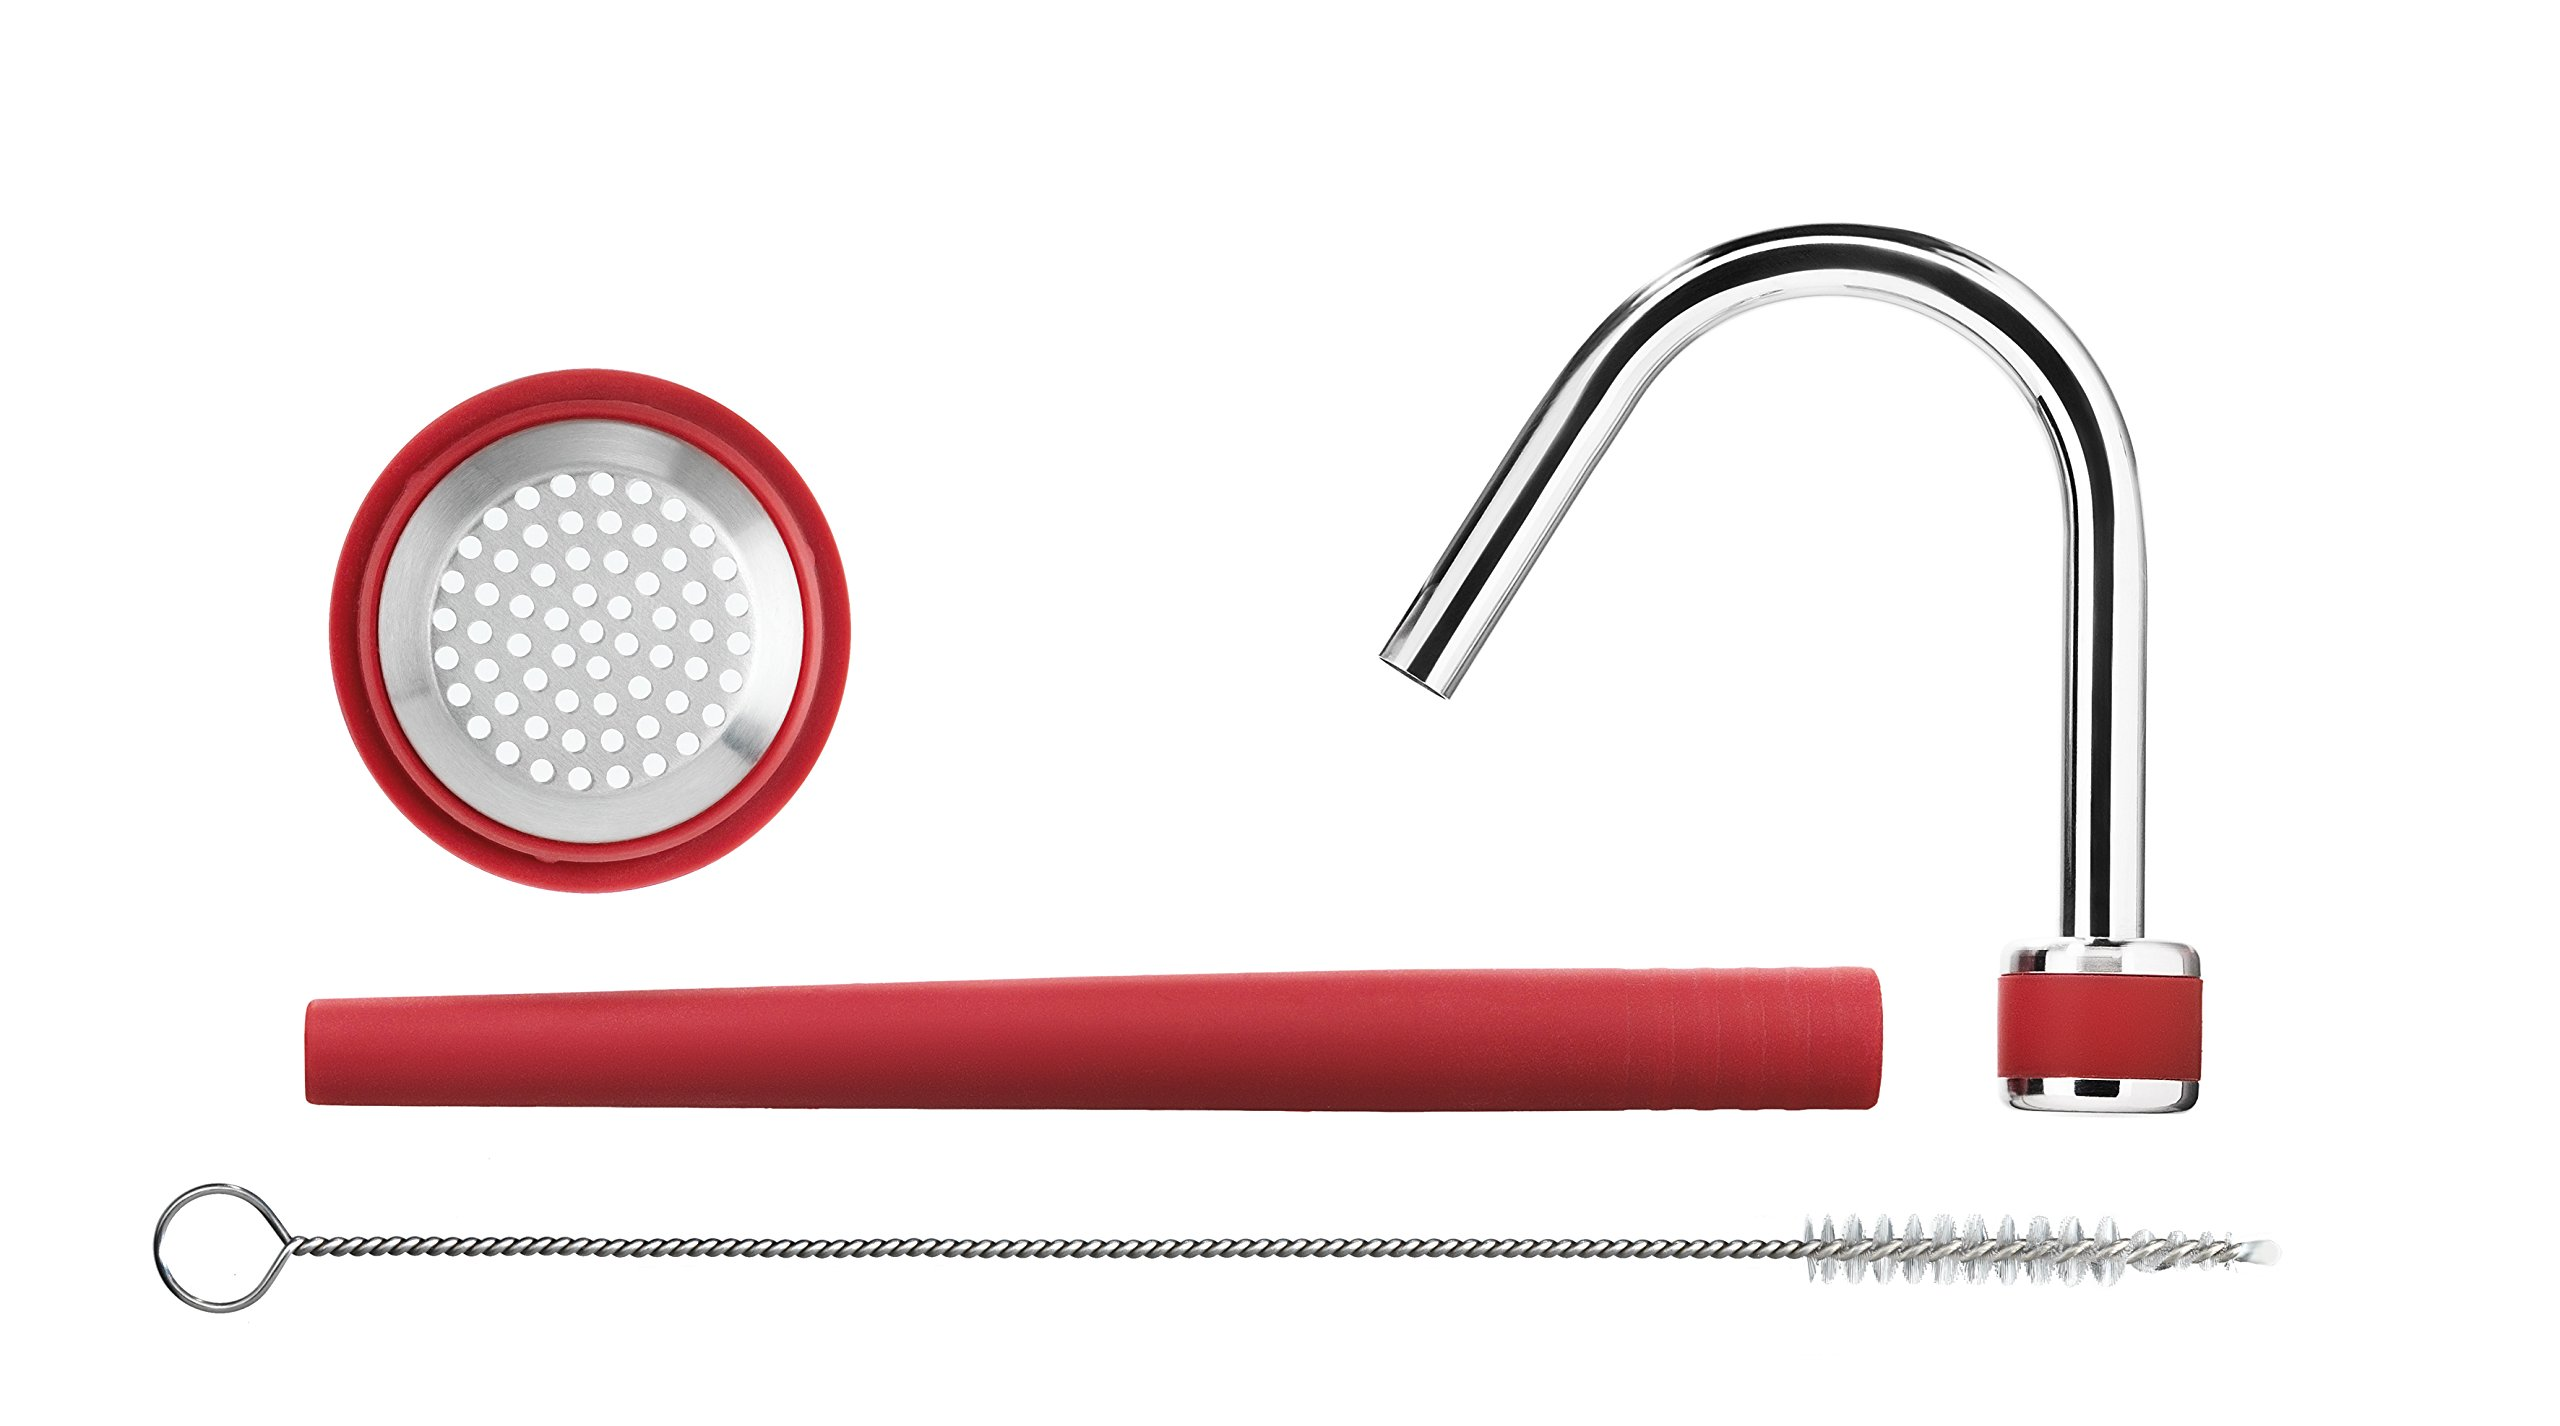 ISI Rapid Infusion 1 Includes red silicone and stainless steel sieve gasket, stainless steel ventilation tube, red silicone tube, and cleaning brush Infuse flavors into your favorite foods Works with iSi Gourmet Whip! cream whipper